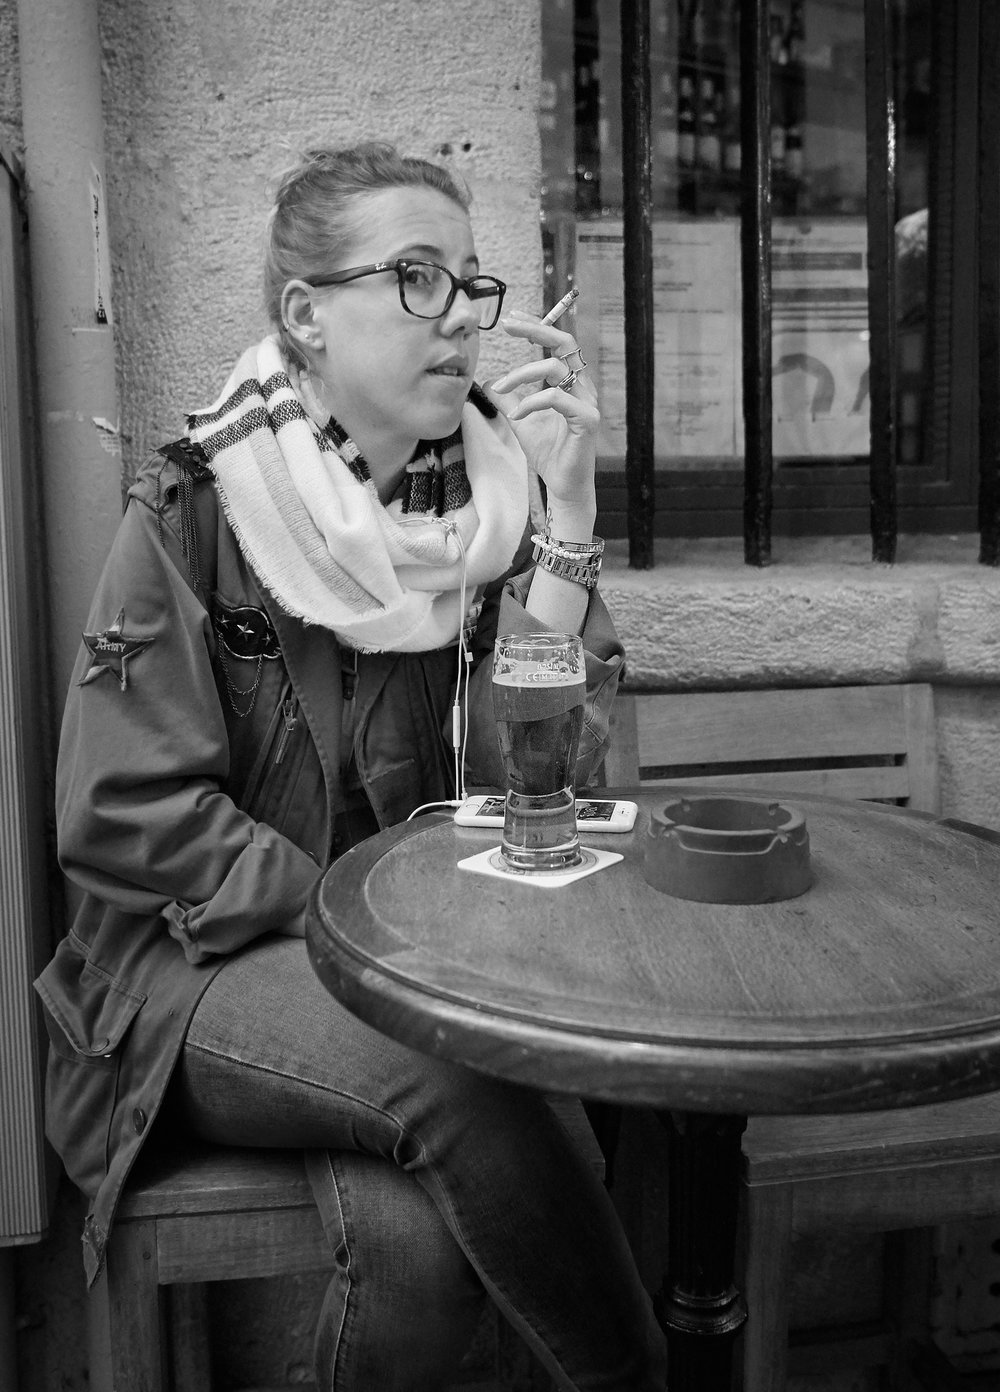 Smoking at table1600x1200 sRGB 1.jpg